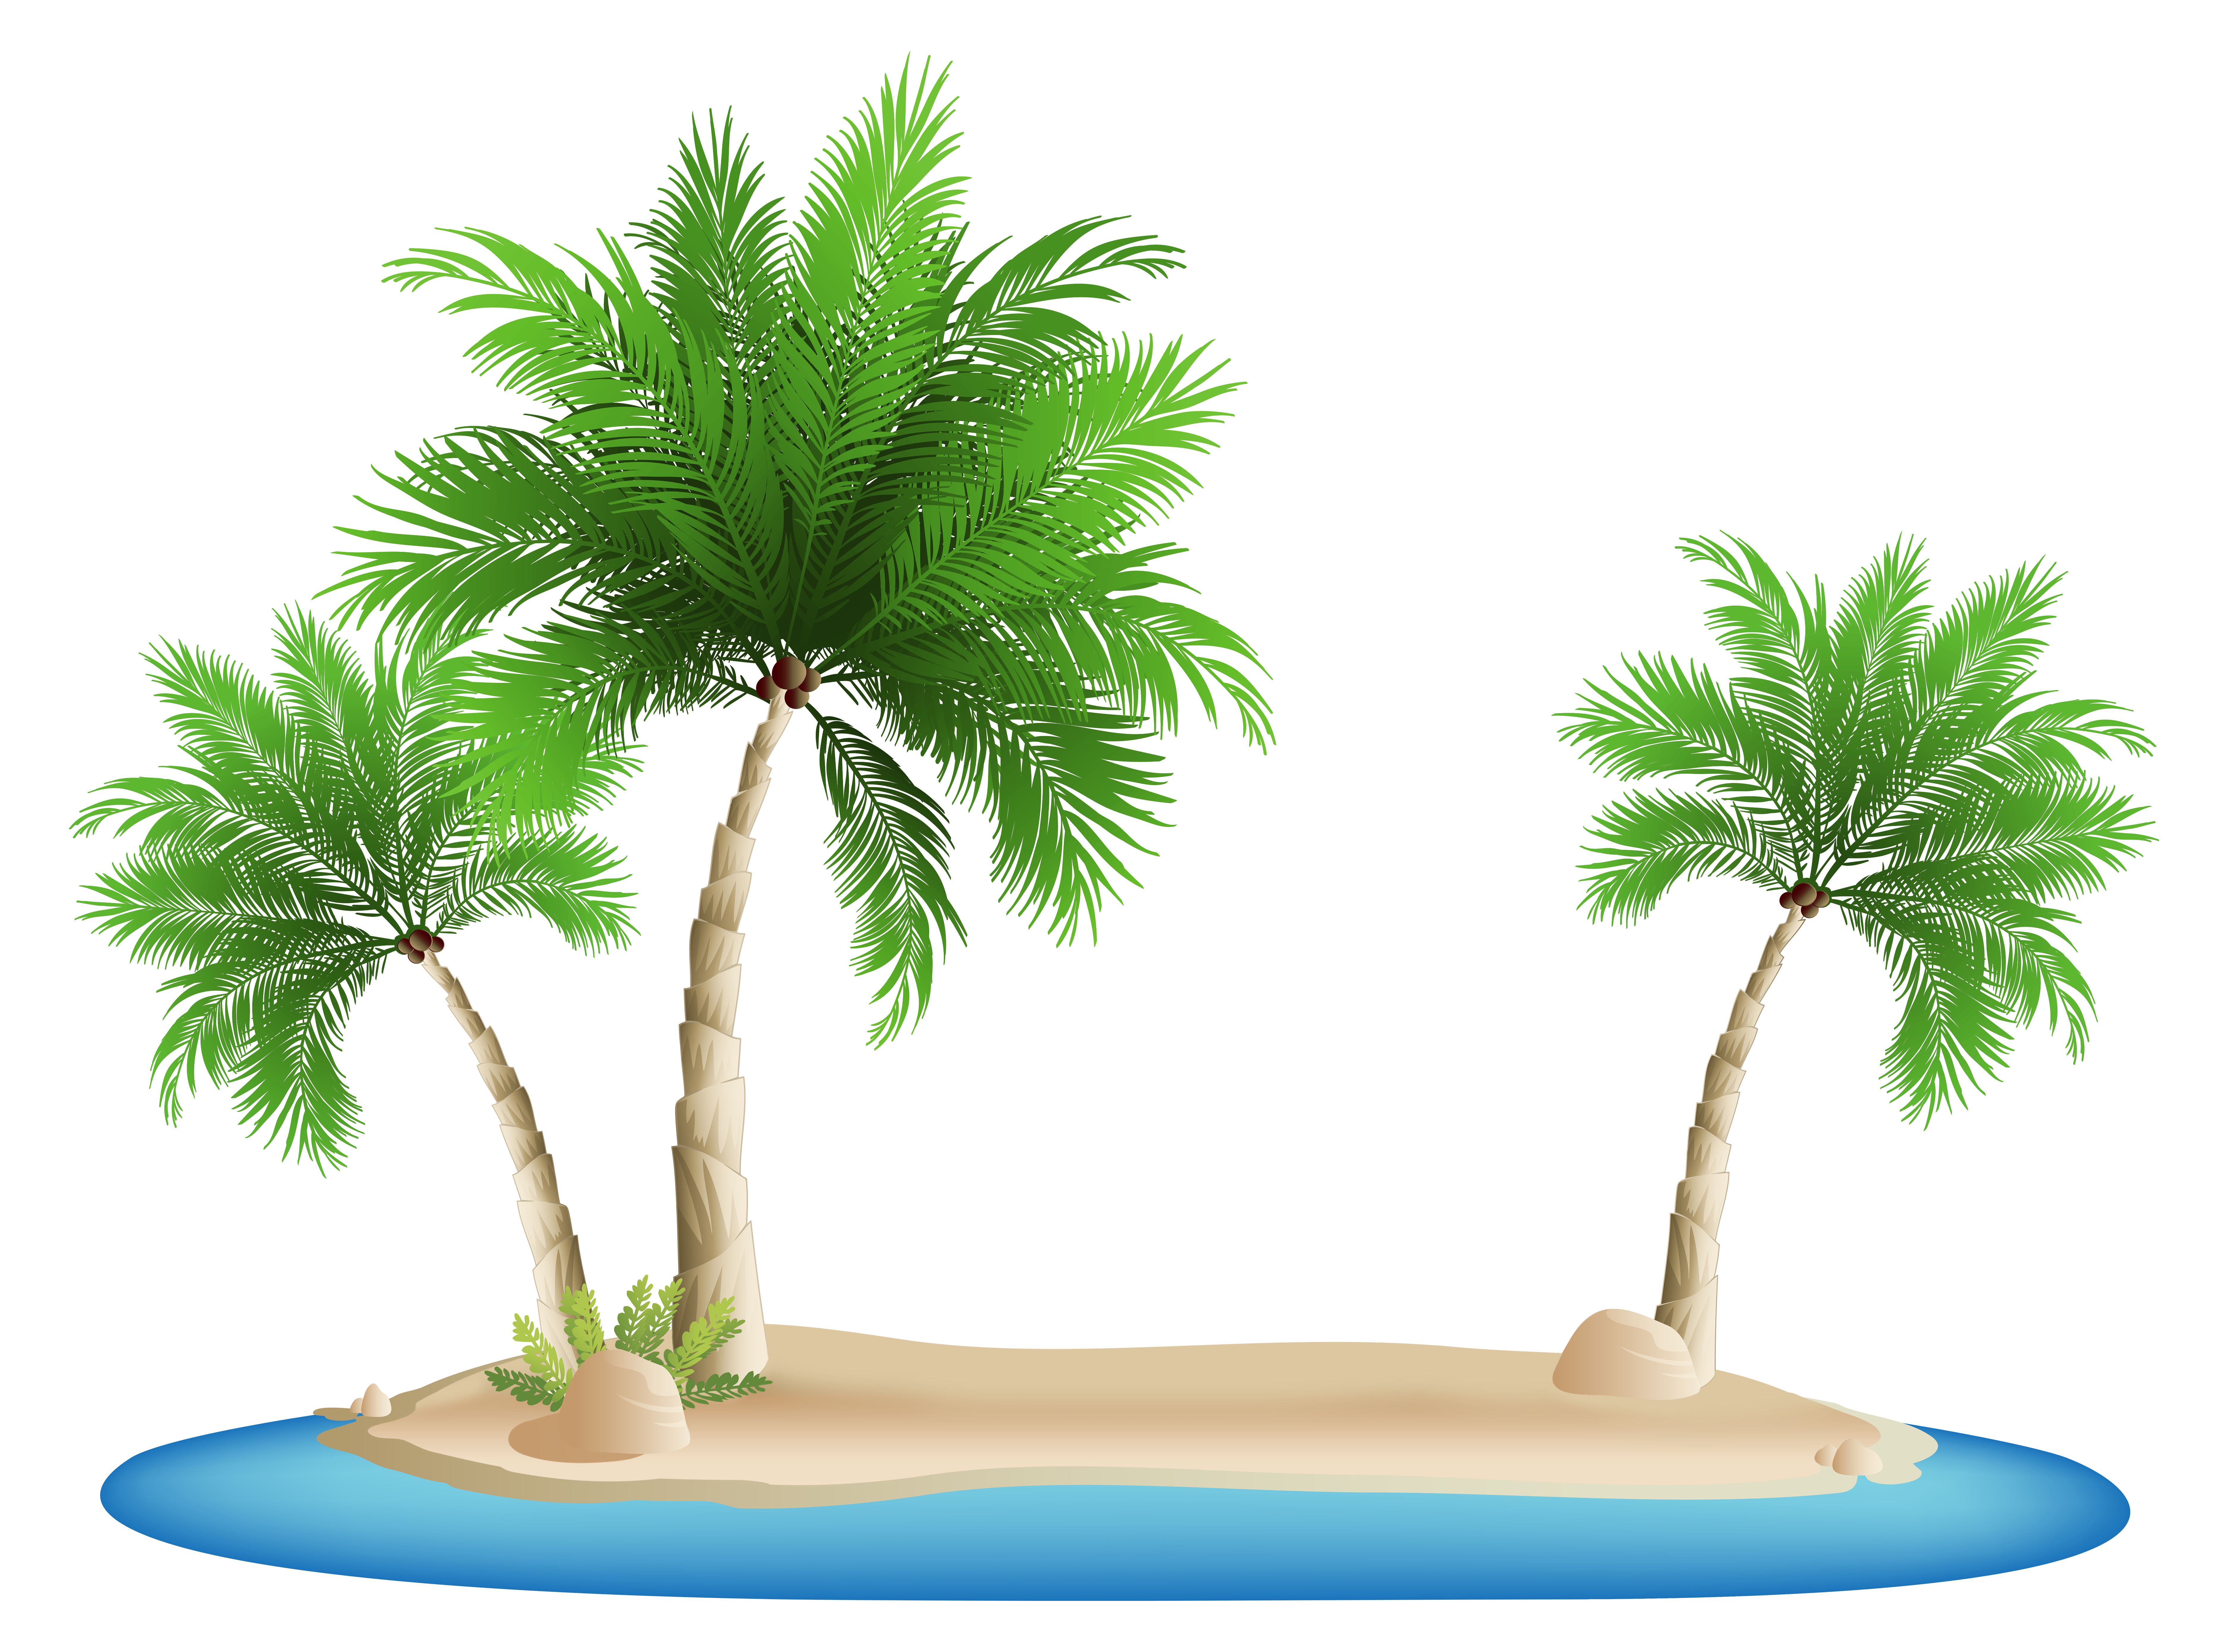 Island palm tree clipart clipart freeuse stock Palm Trees Island PNG Clipart Image clipart freeuse stock